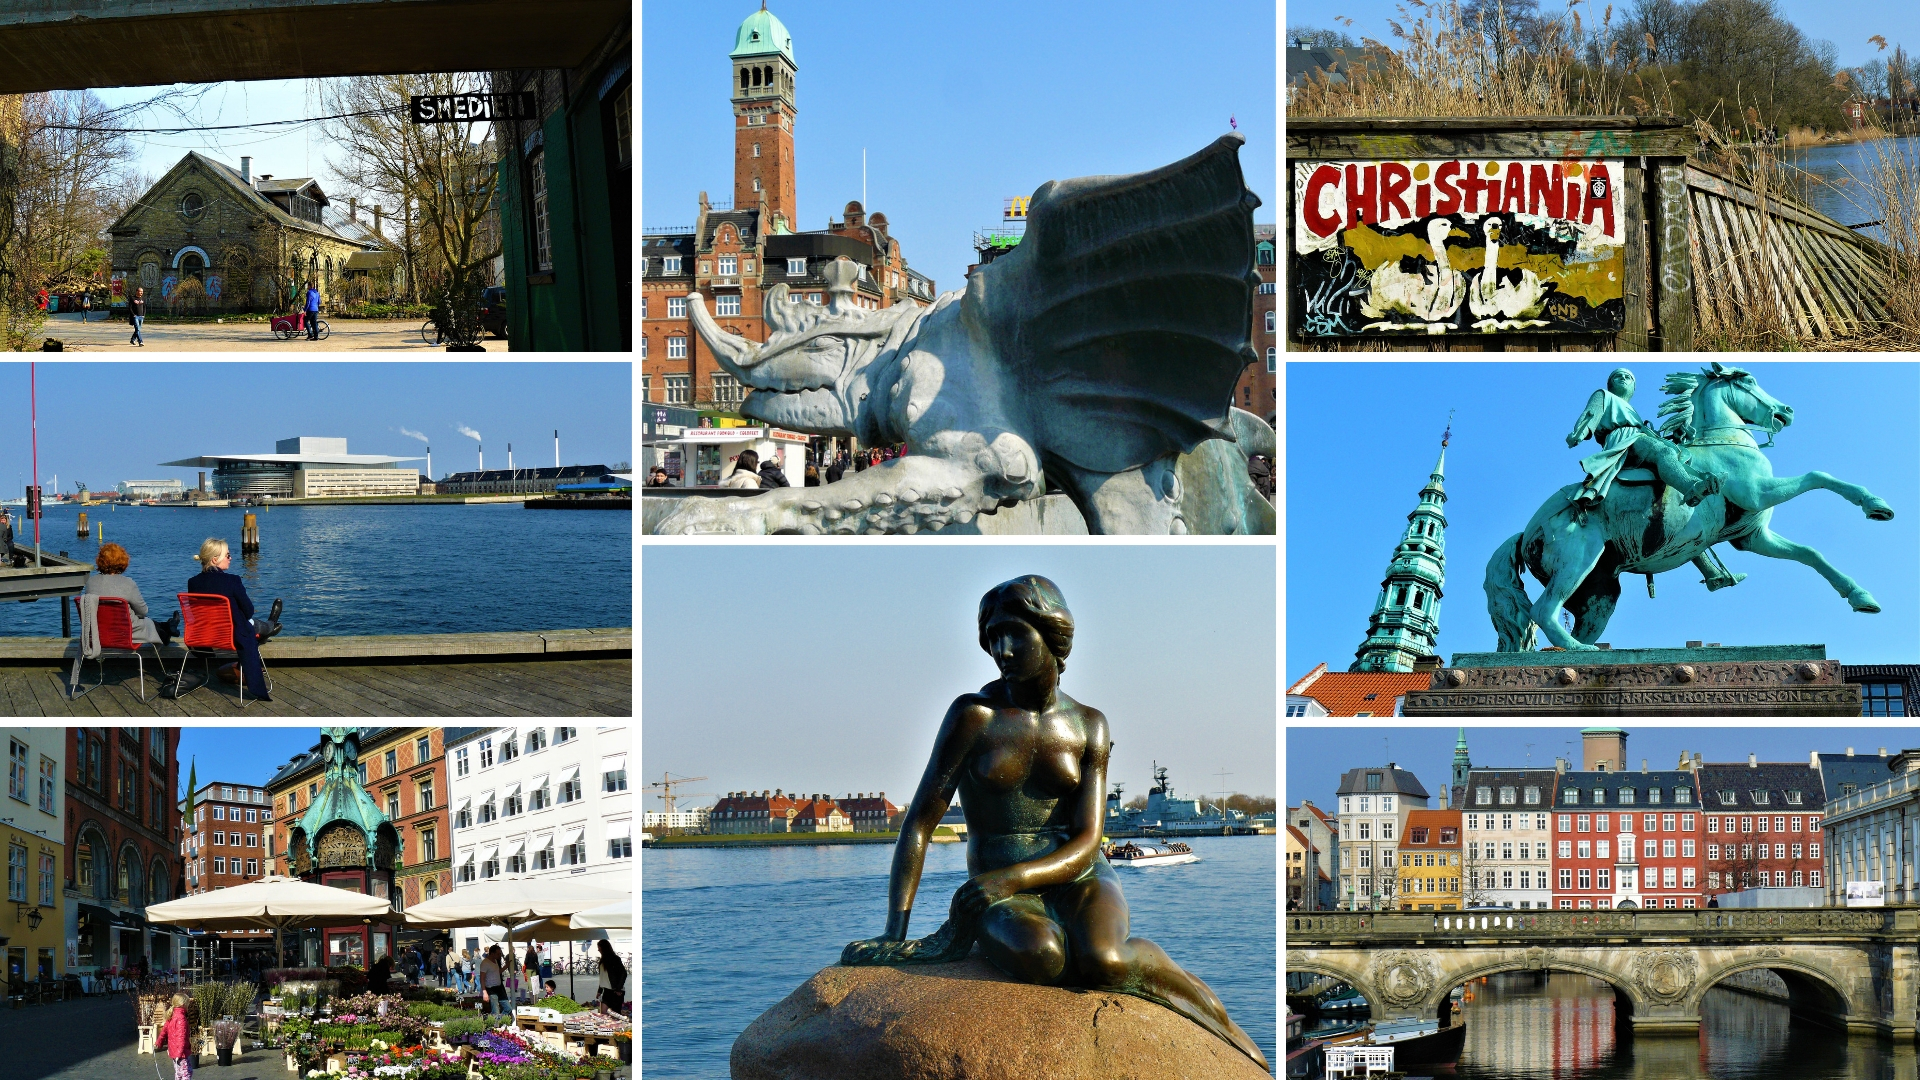 copenhague que voir danemark blog voyage europe du nord scandinavie train arpenter le chemin